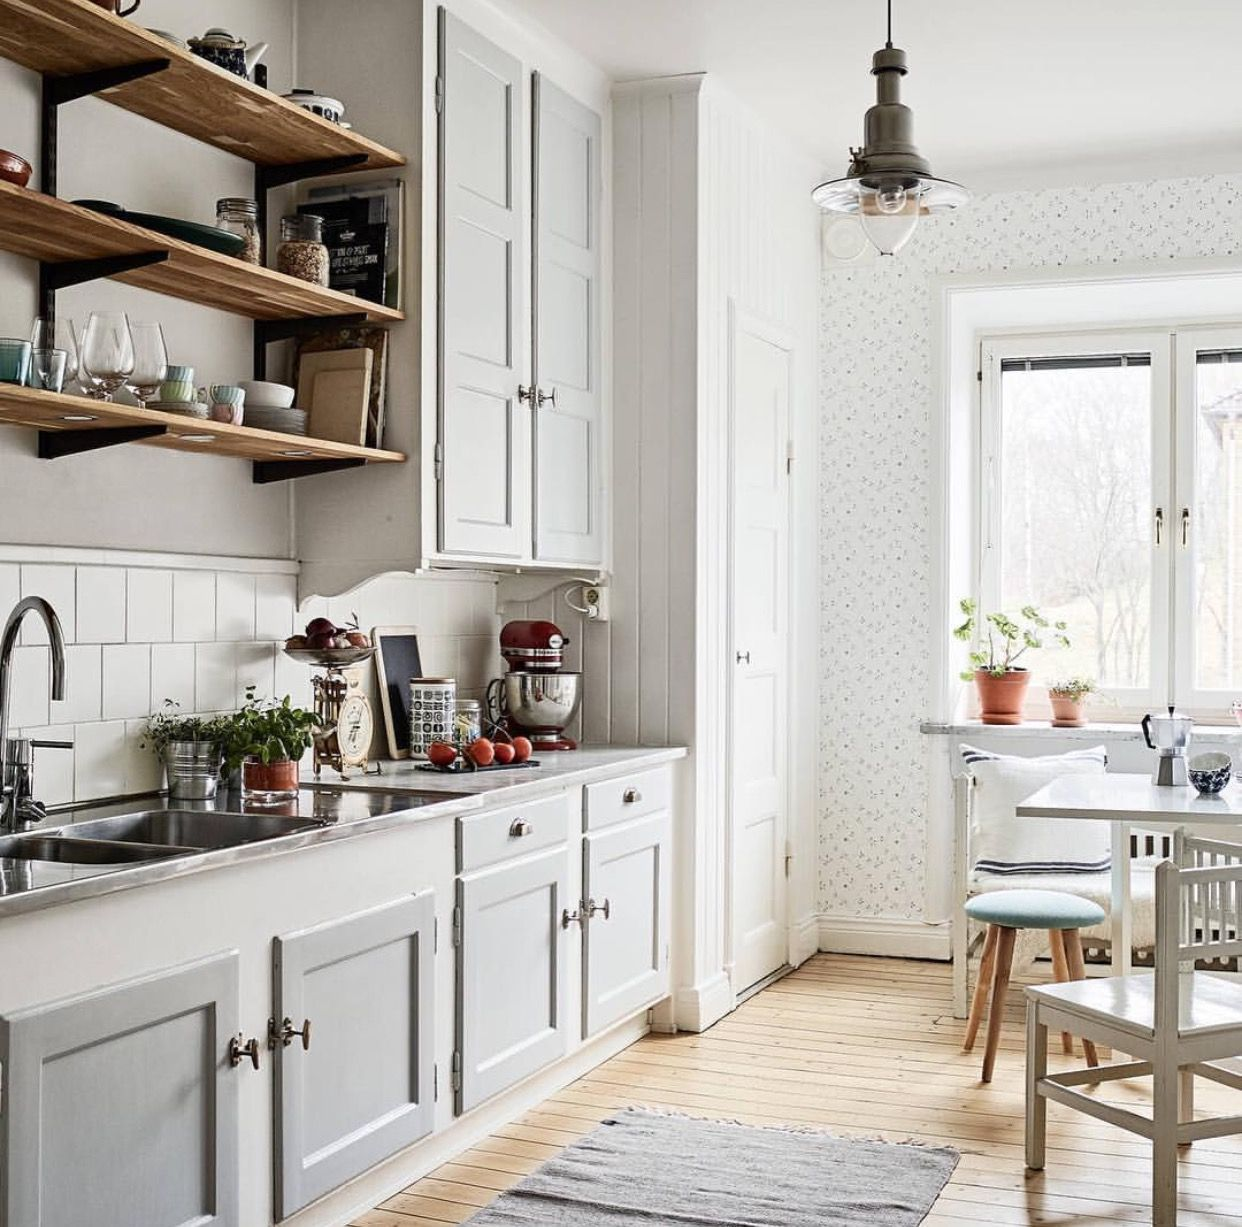 Gray kitchen cabinets open shelving light wood floors the